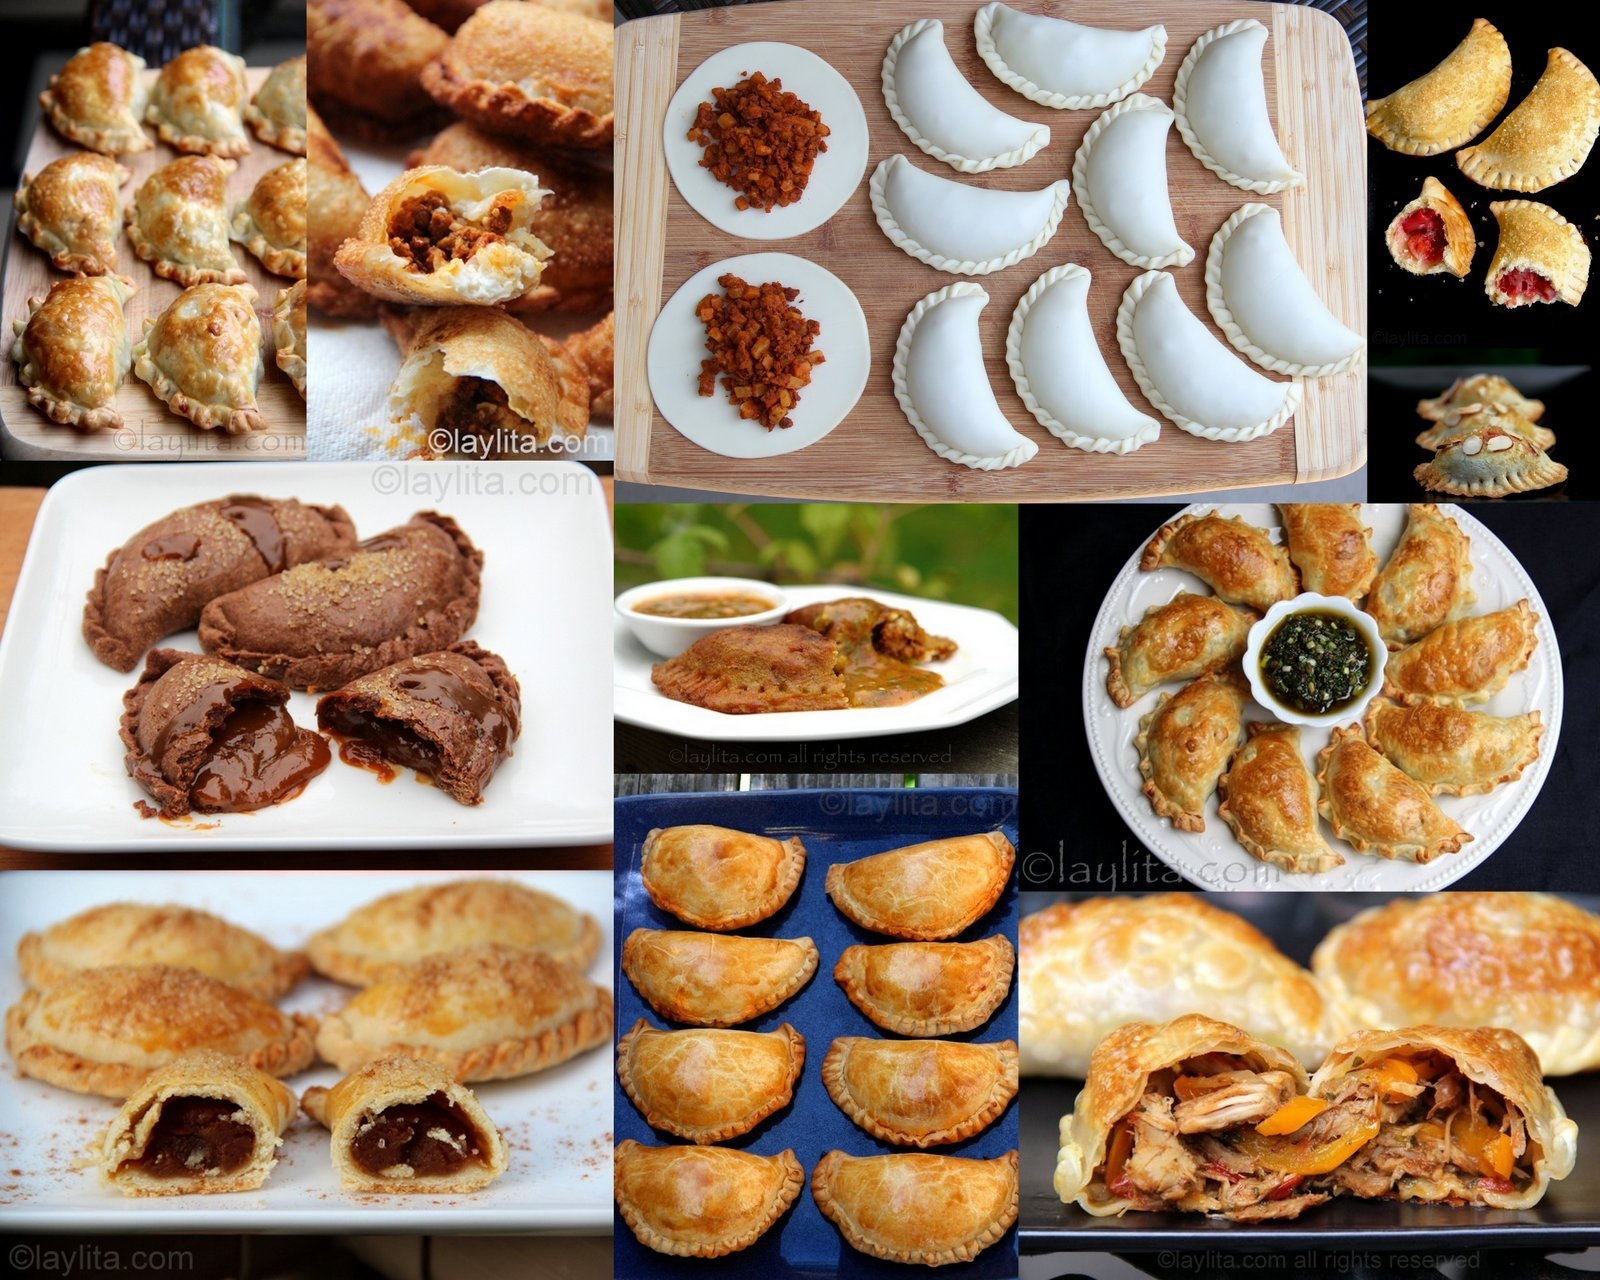 Empanada filling recipes and ideas